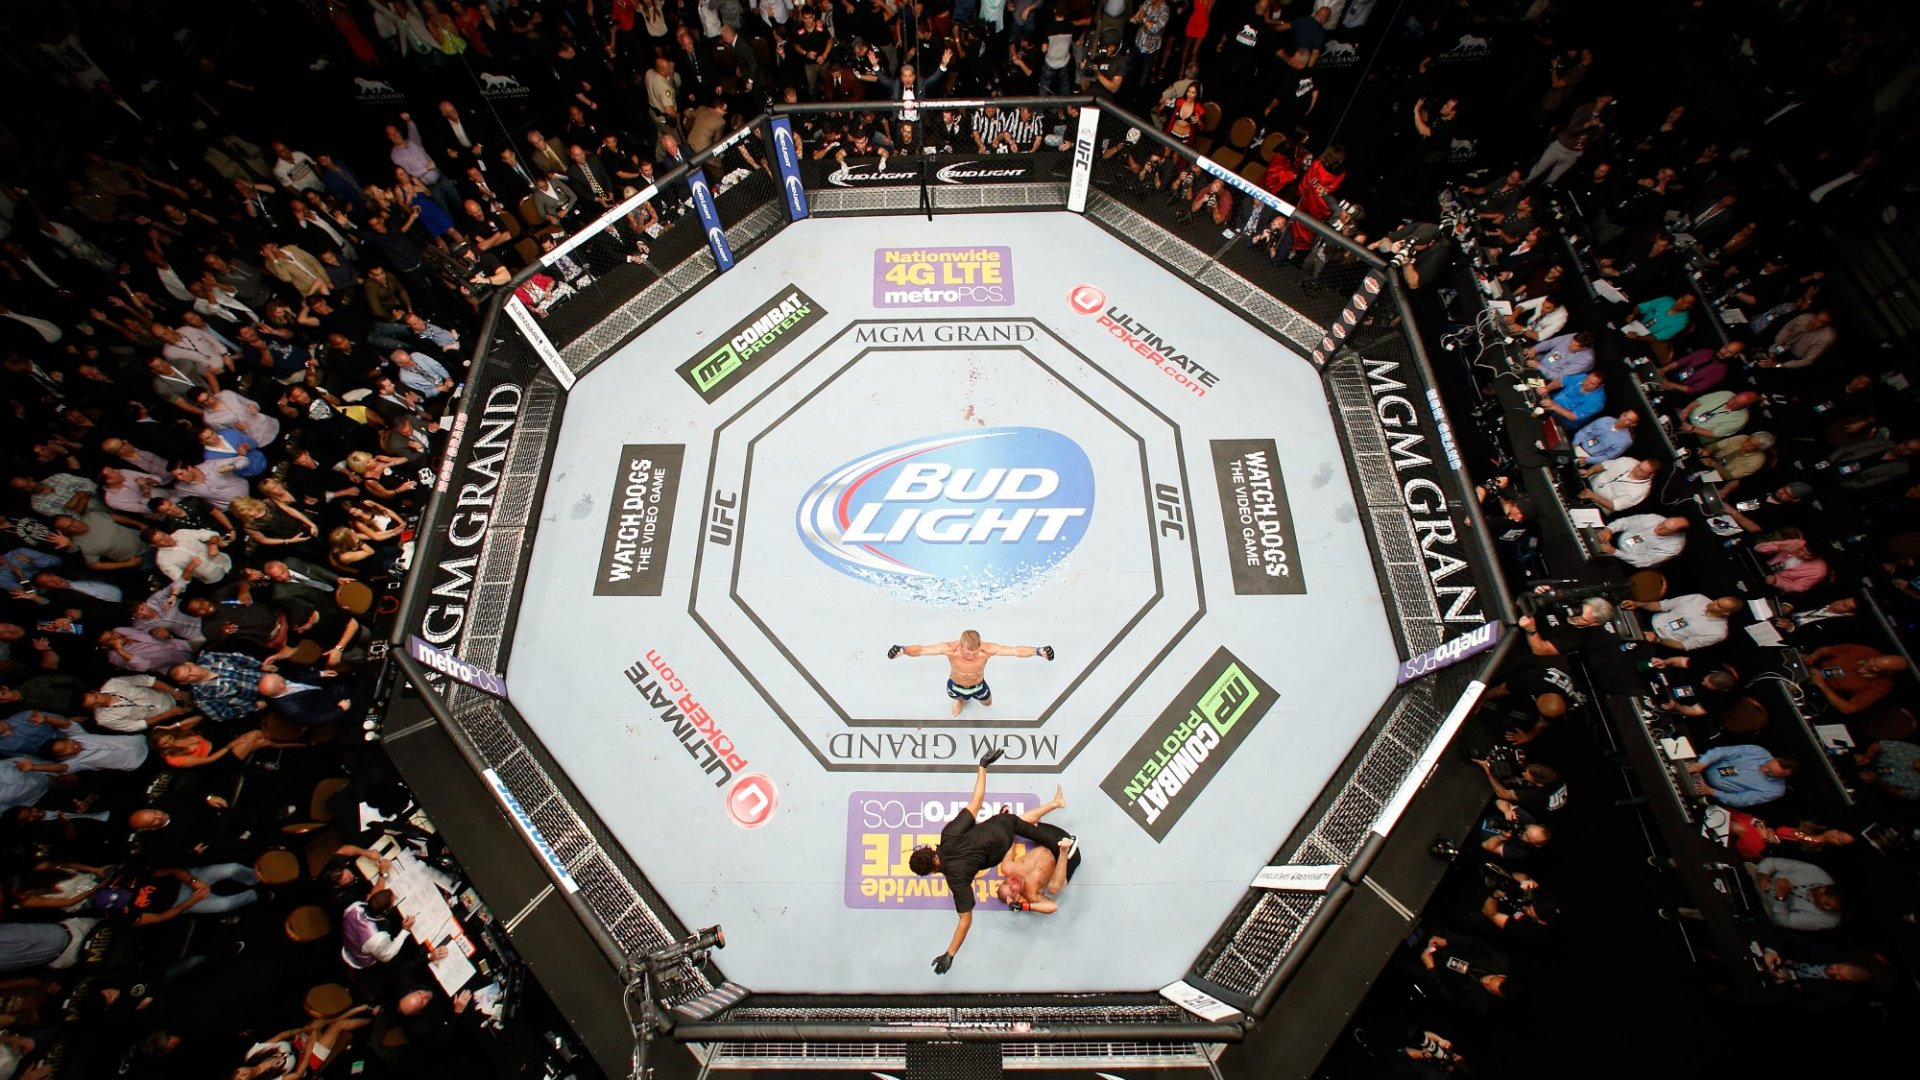 The 1 Simple Rule 2 Brothers Used to Turn the UFC Into a Billion-Dollar Business